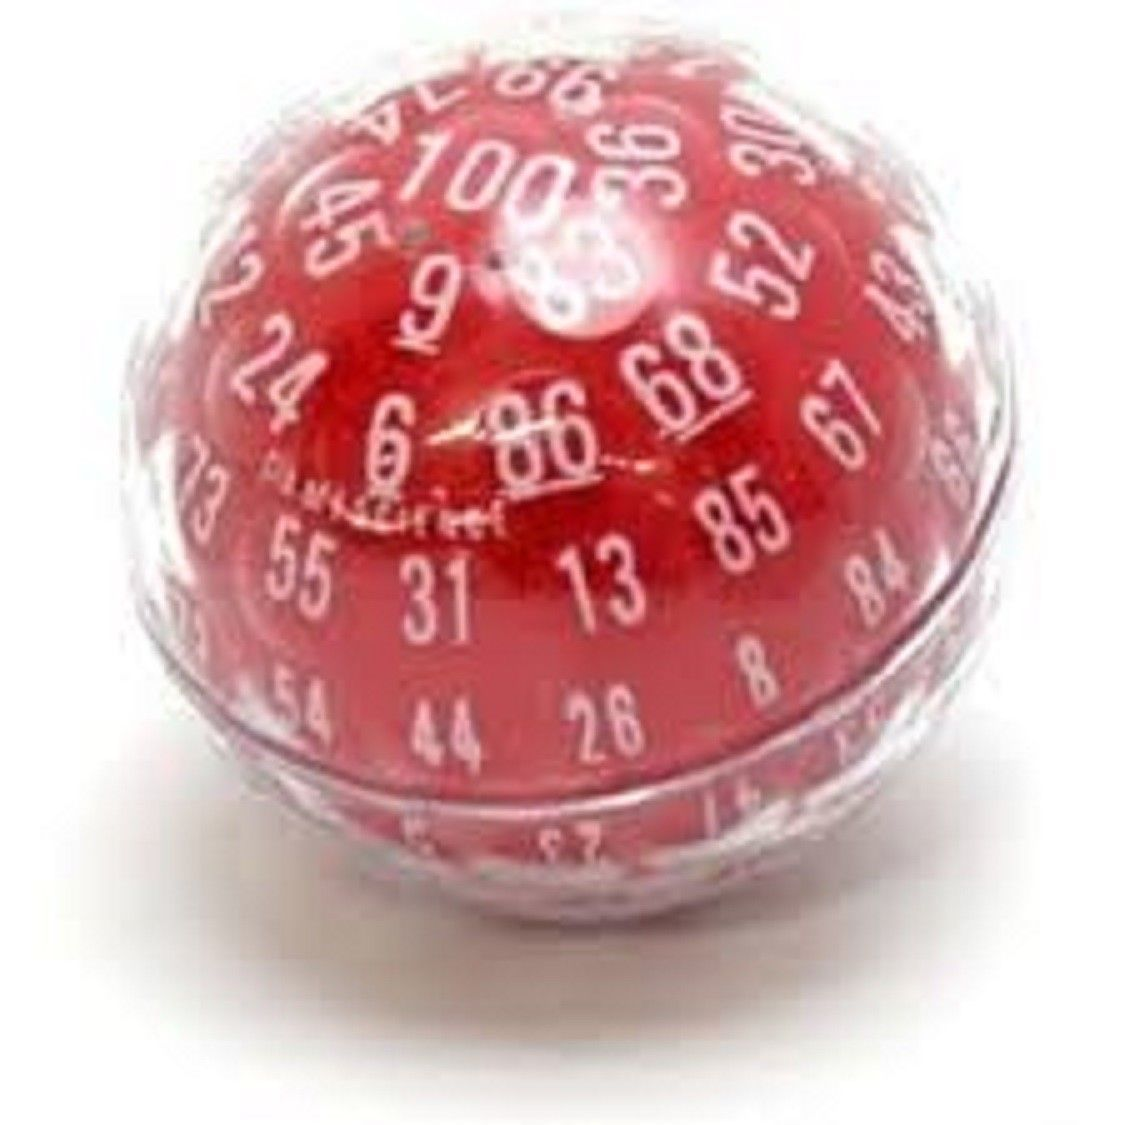 Accessories And Dice 44112 Zocchihedron D100 100 Sided Die Red With White Numbers Gamescience Dice Buy It Now Only 15 99 On Ebay Ebay Red The 100